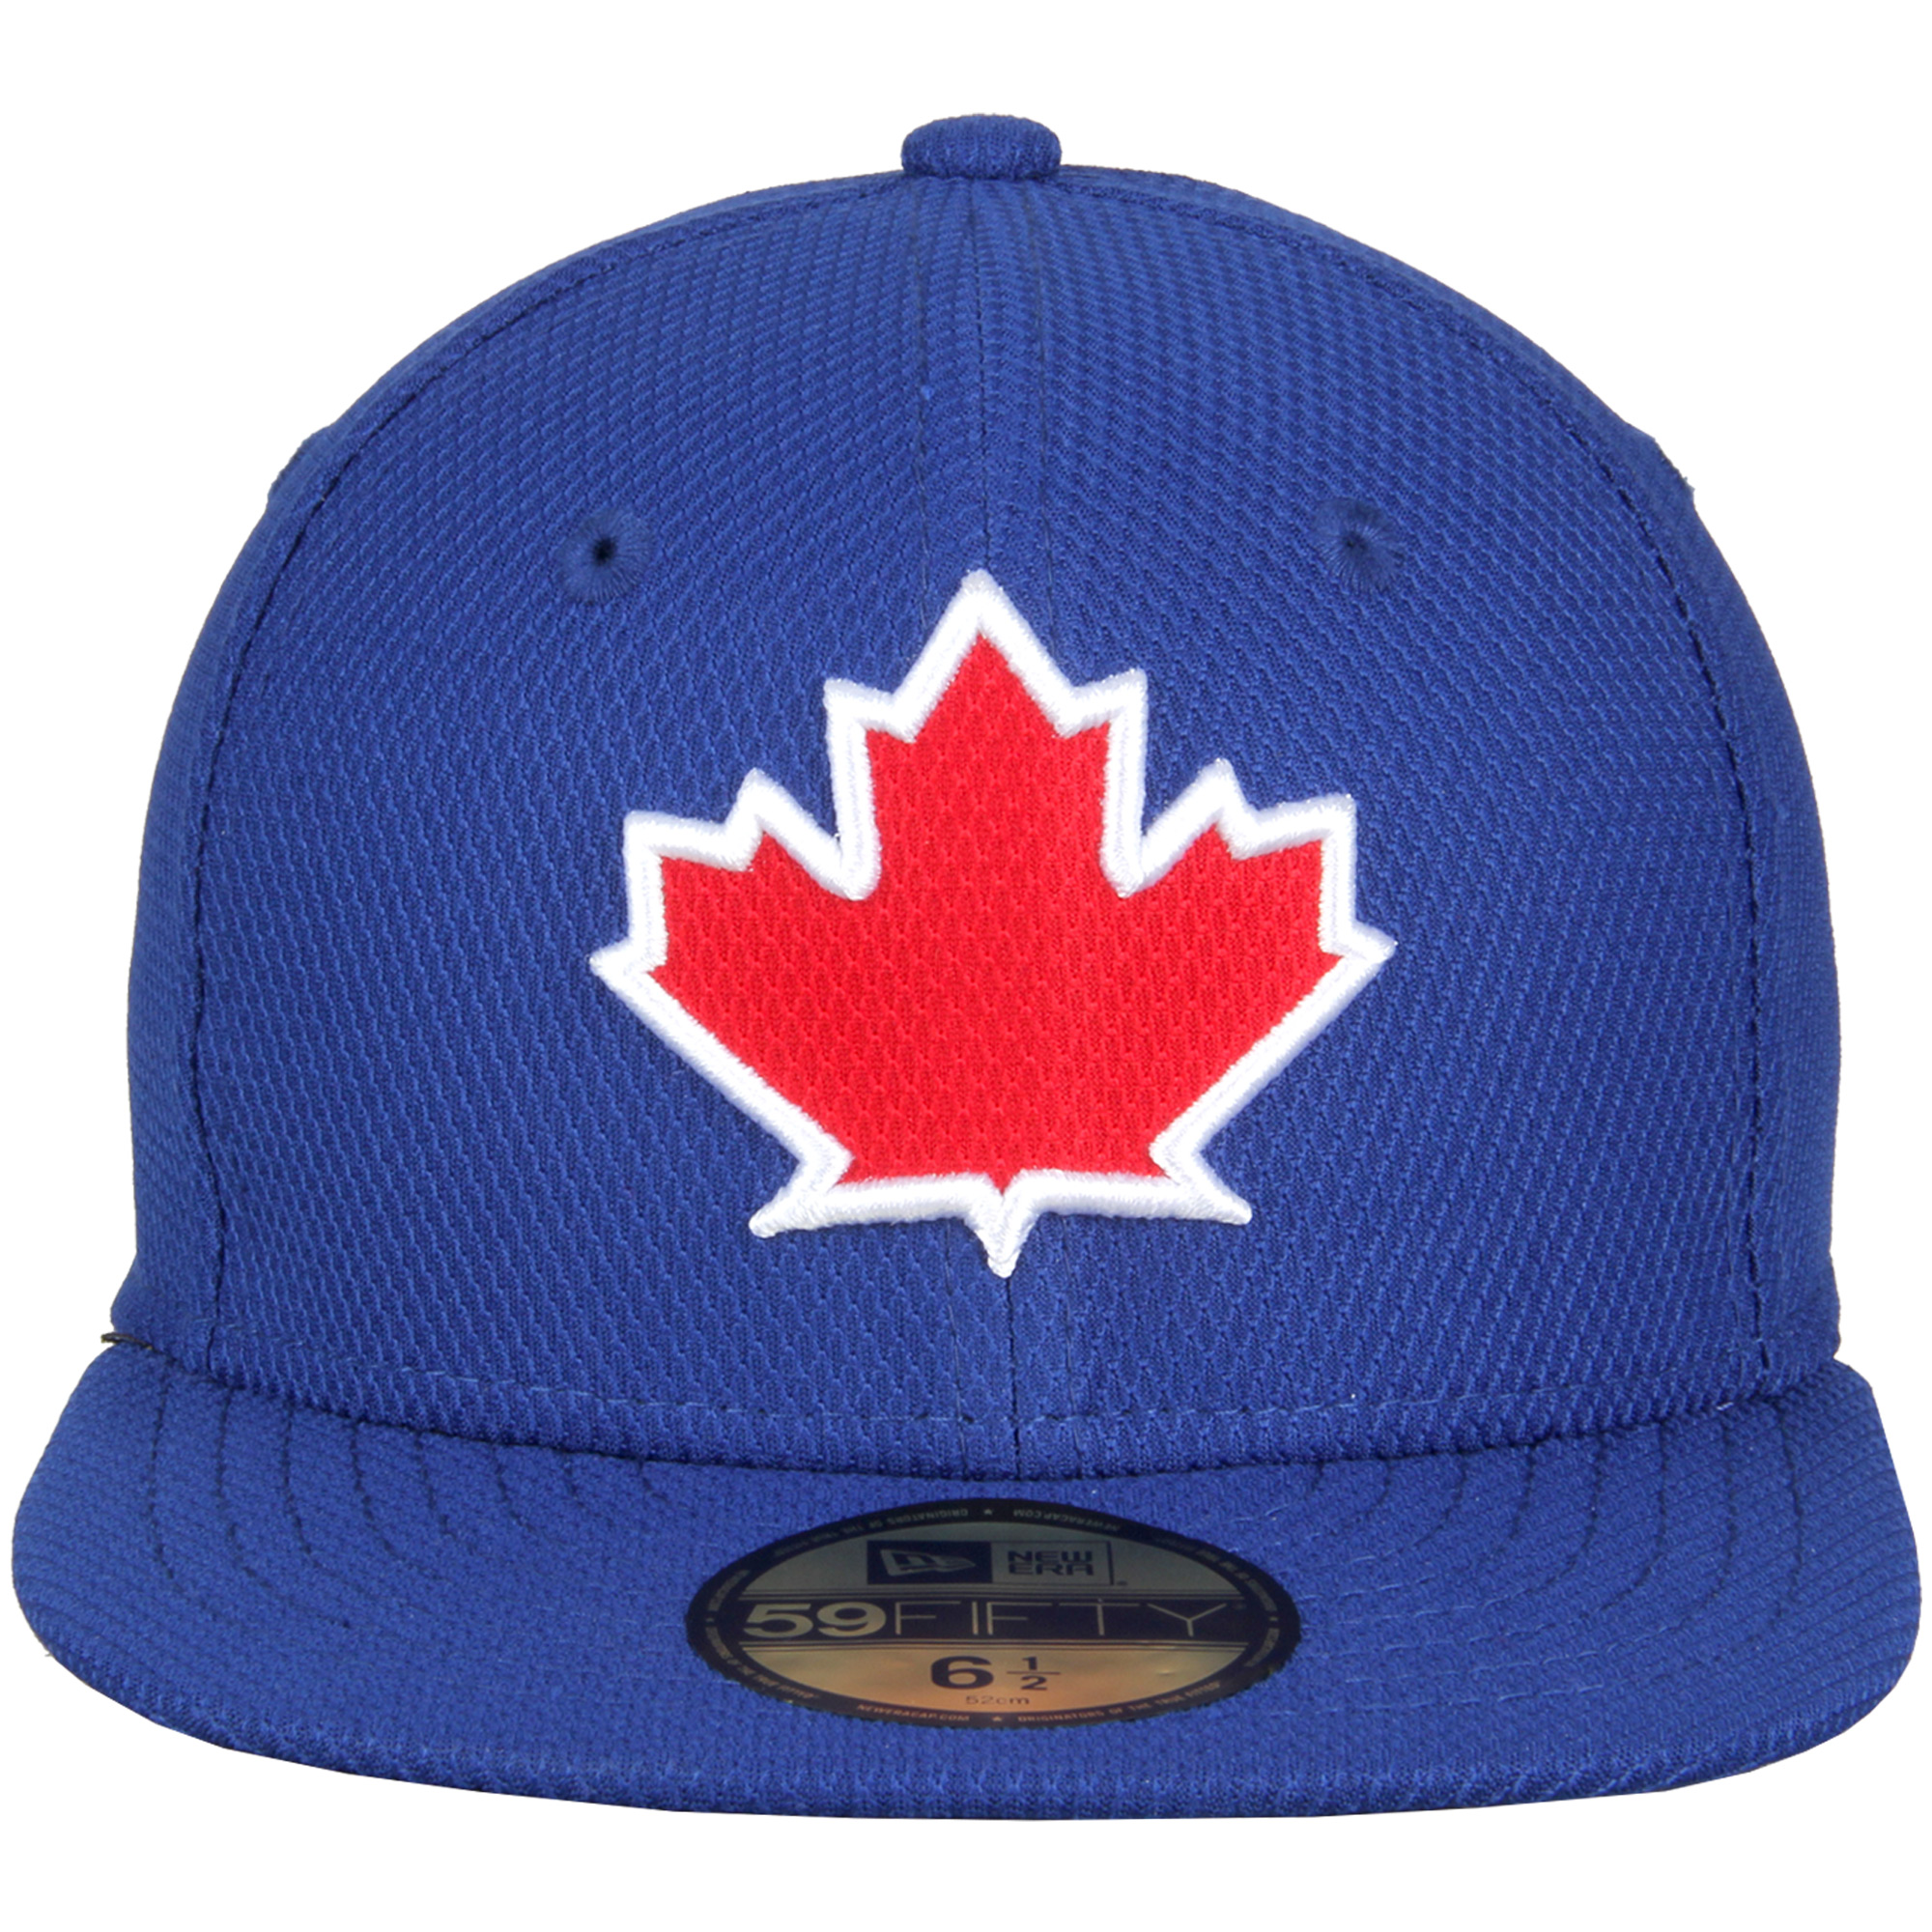 new arrival 431a4 80676 Toronto Blue Jays New Era Youth Authentic Collection On-Field Alternate 59FIFTY  Fitted Hat - Royal